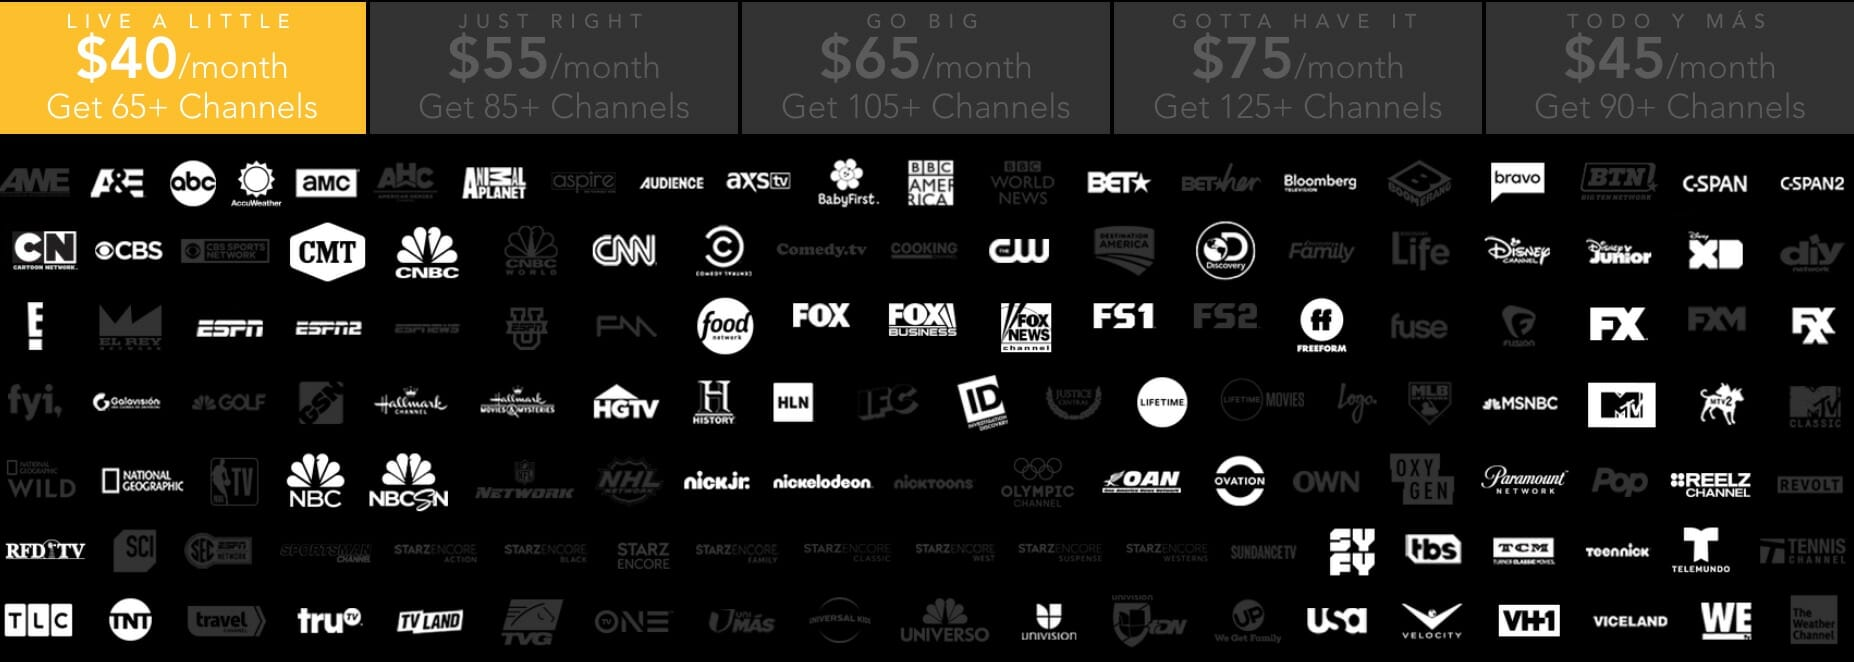 sling tv competitors DirecTV Now